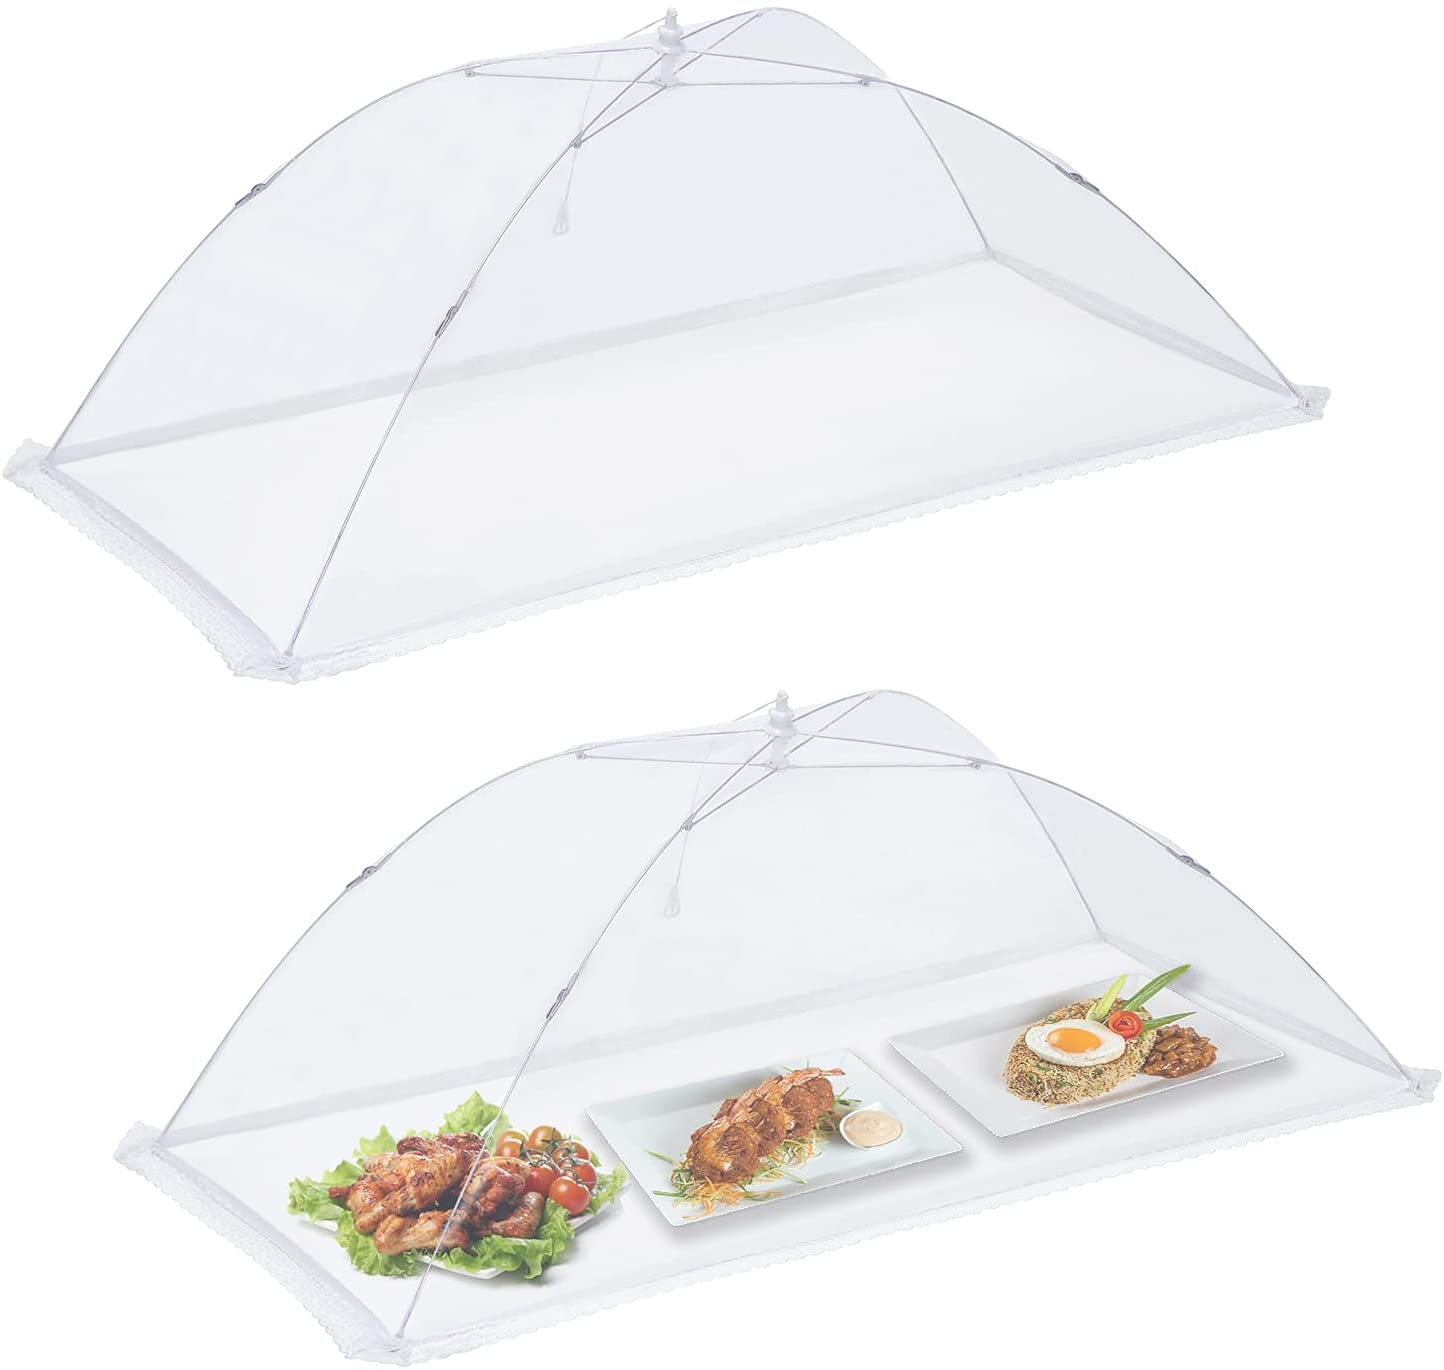 2 Pack Jumbo Food Cover Tent For Inflatable Bar - Extra Large(45.5